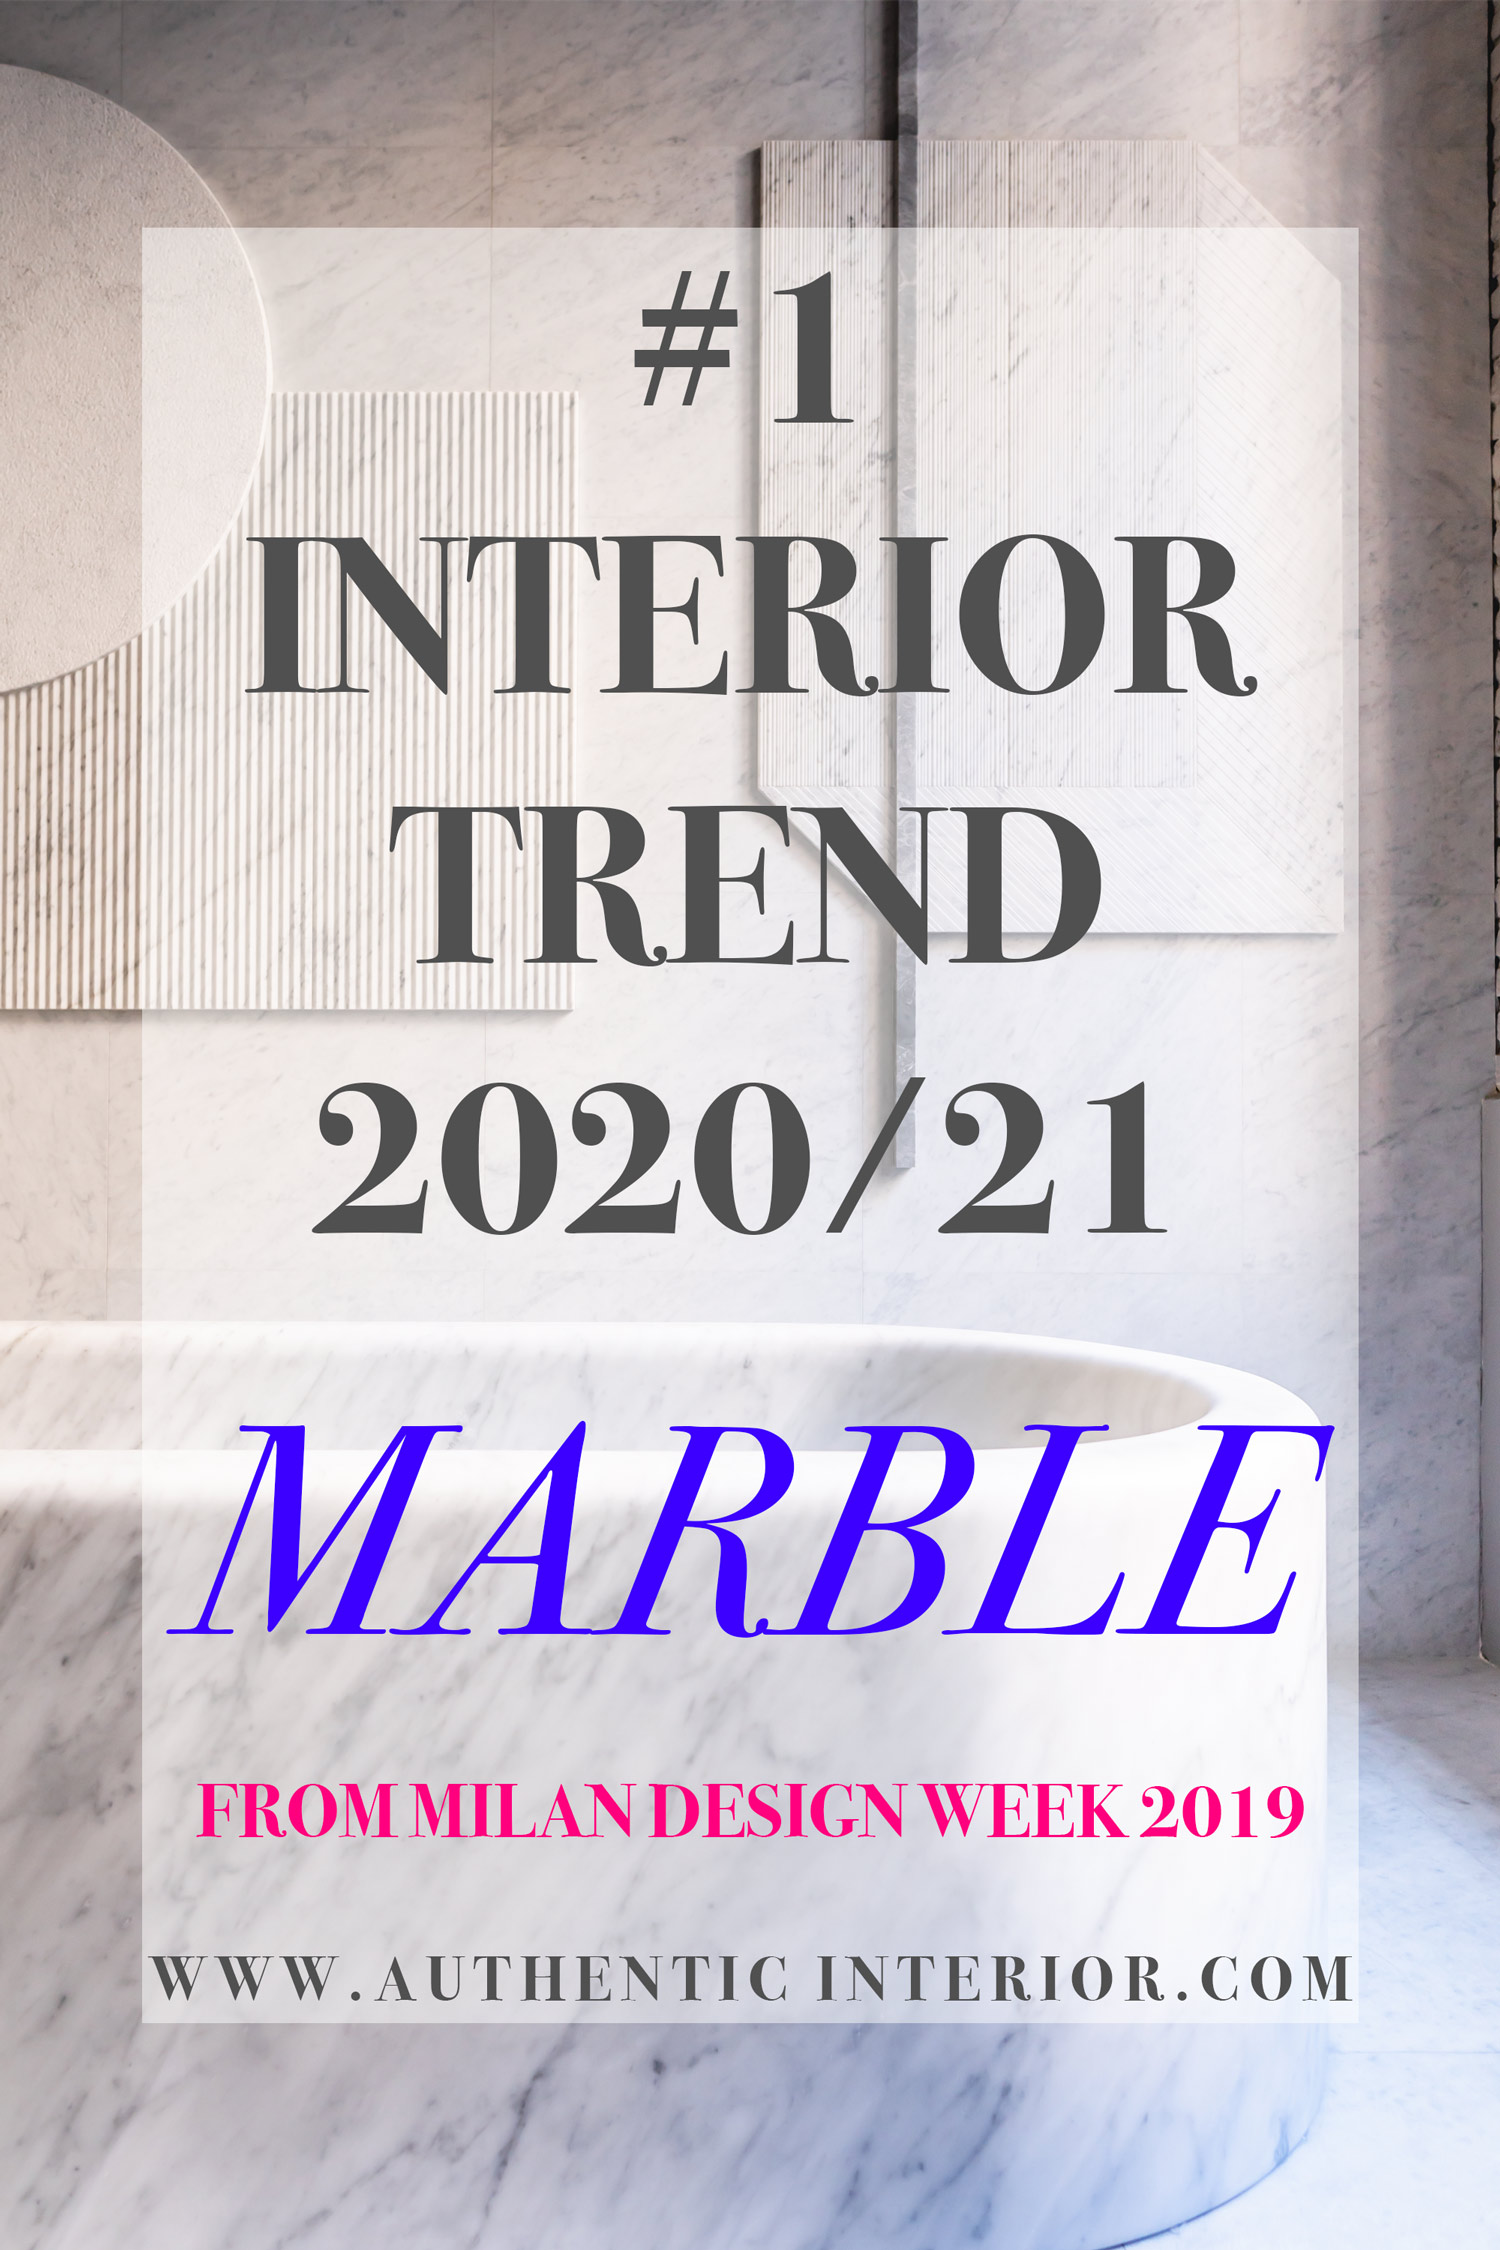 Interior design trends for 2020 - Marble interior trend - Authentic Interior design studio & blog www.authenticinterior.com